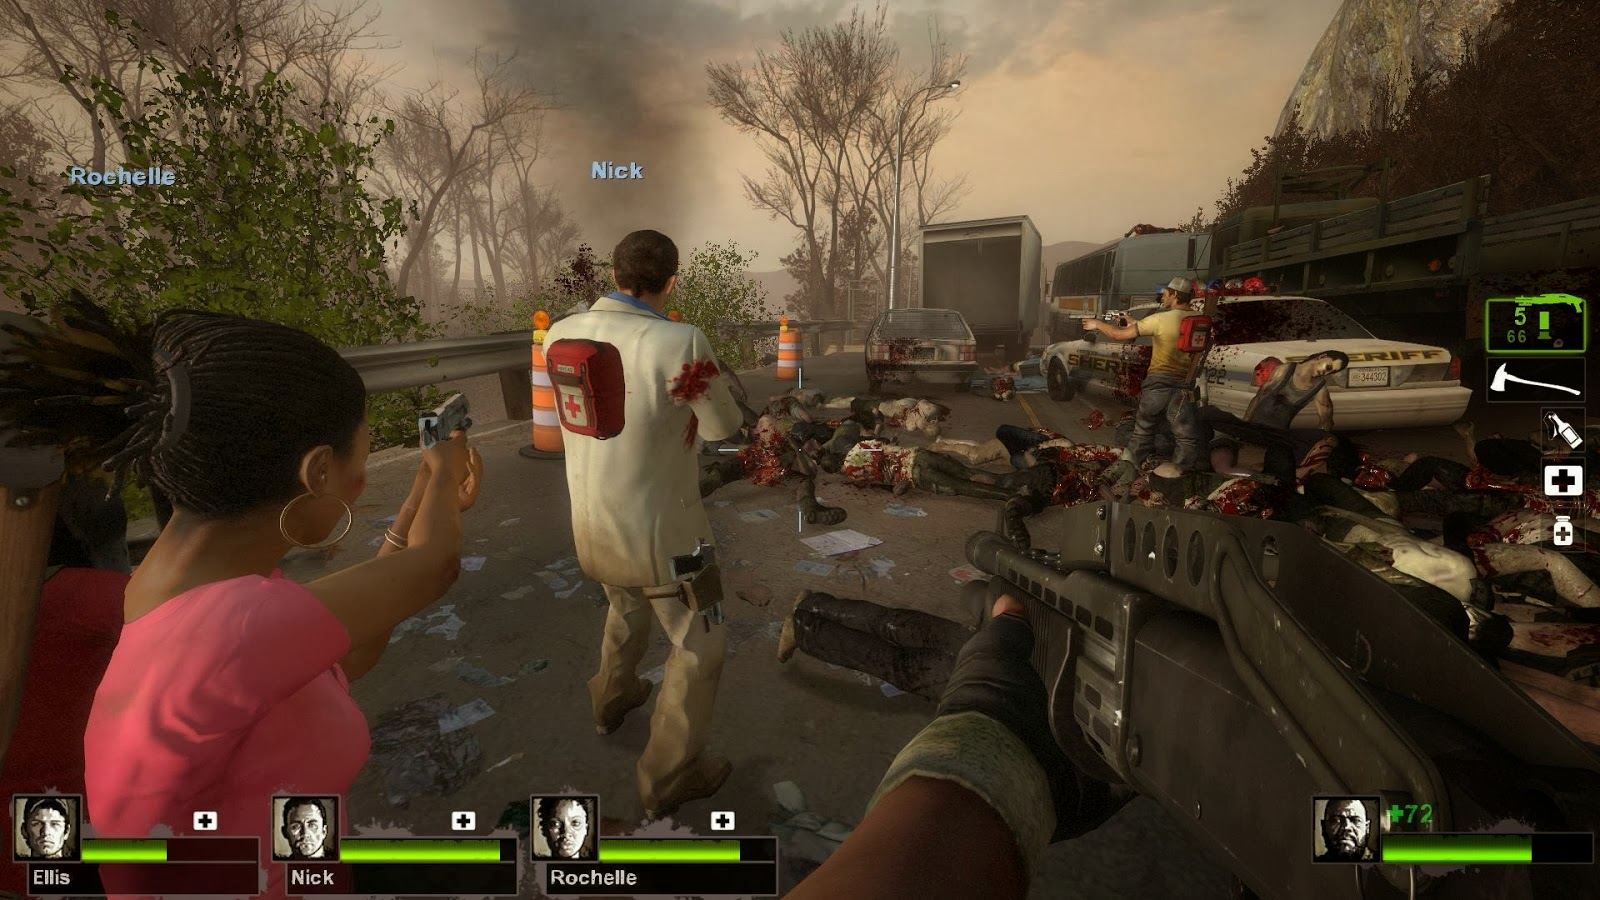 Download Left 4 Dead 2 Fully Full Version PC Game For Free ...